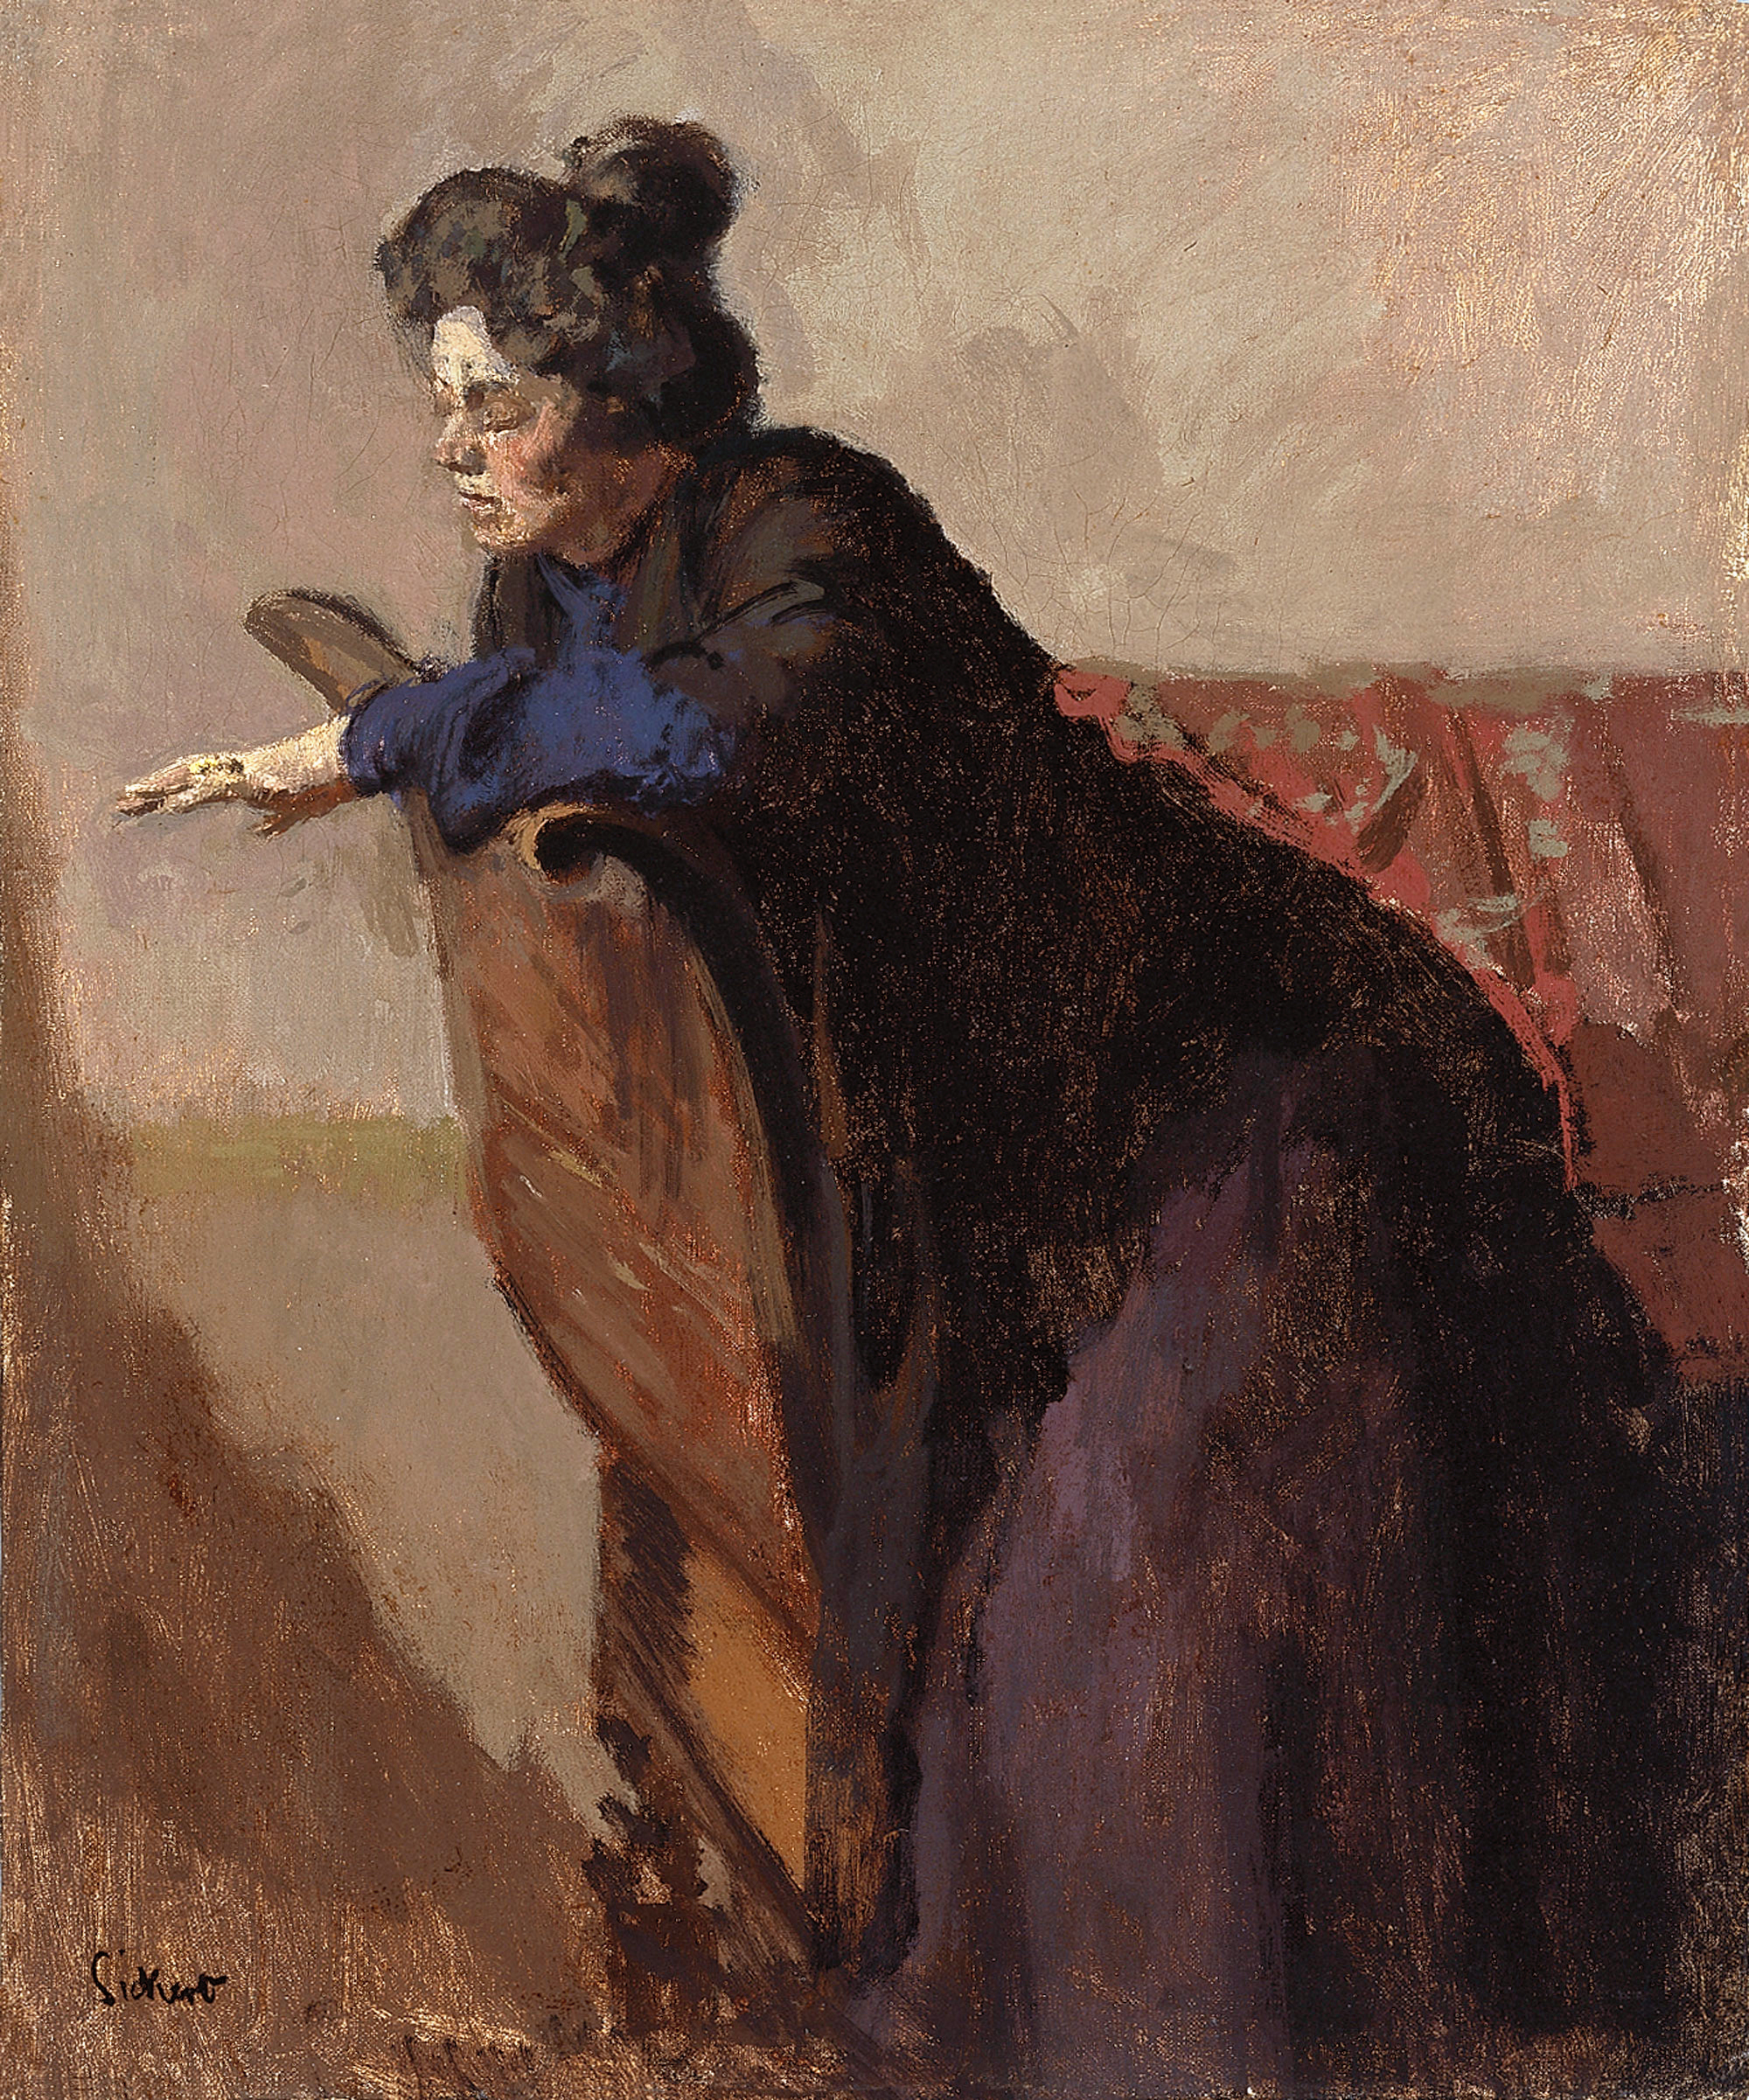 https://i0.wp.com/upload.wikimedia.org/wikipedia/commons/8/84/La_Giuseppina%2C_the_Ring%2C_by_Walter_Sickert.jpg